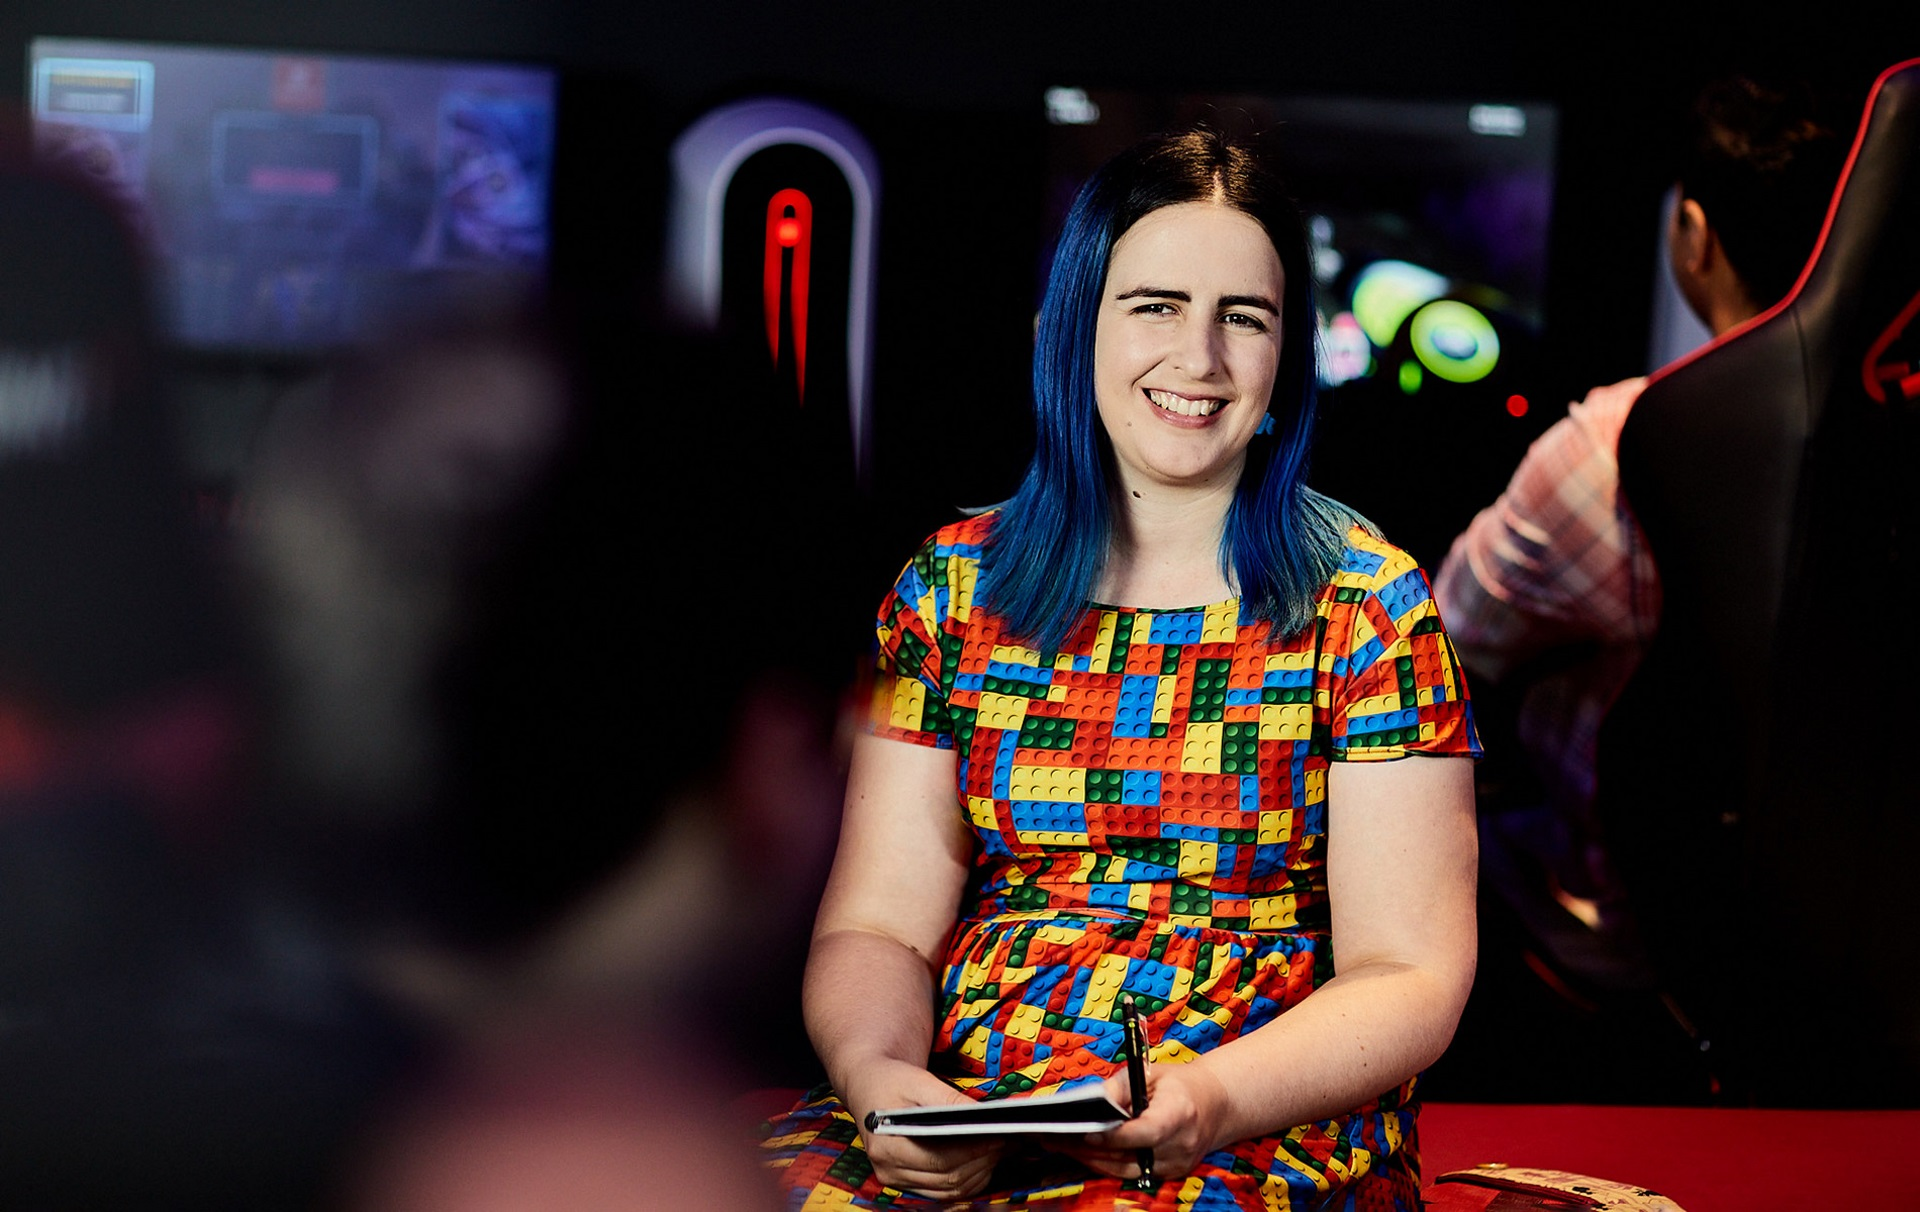 Megan sitting in the esports hub with a notepad